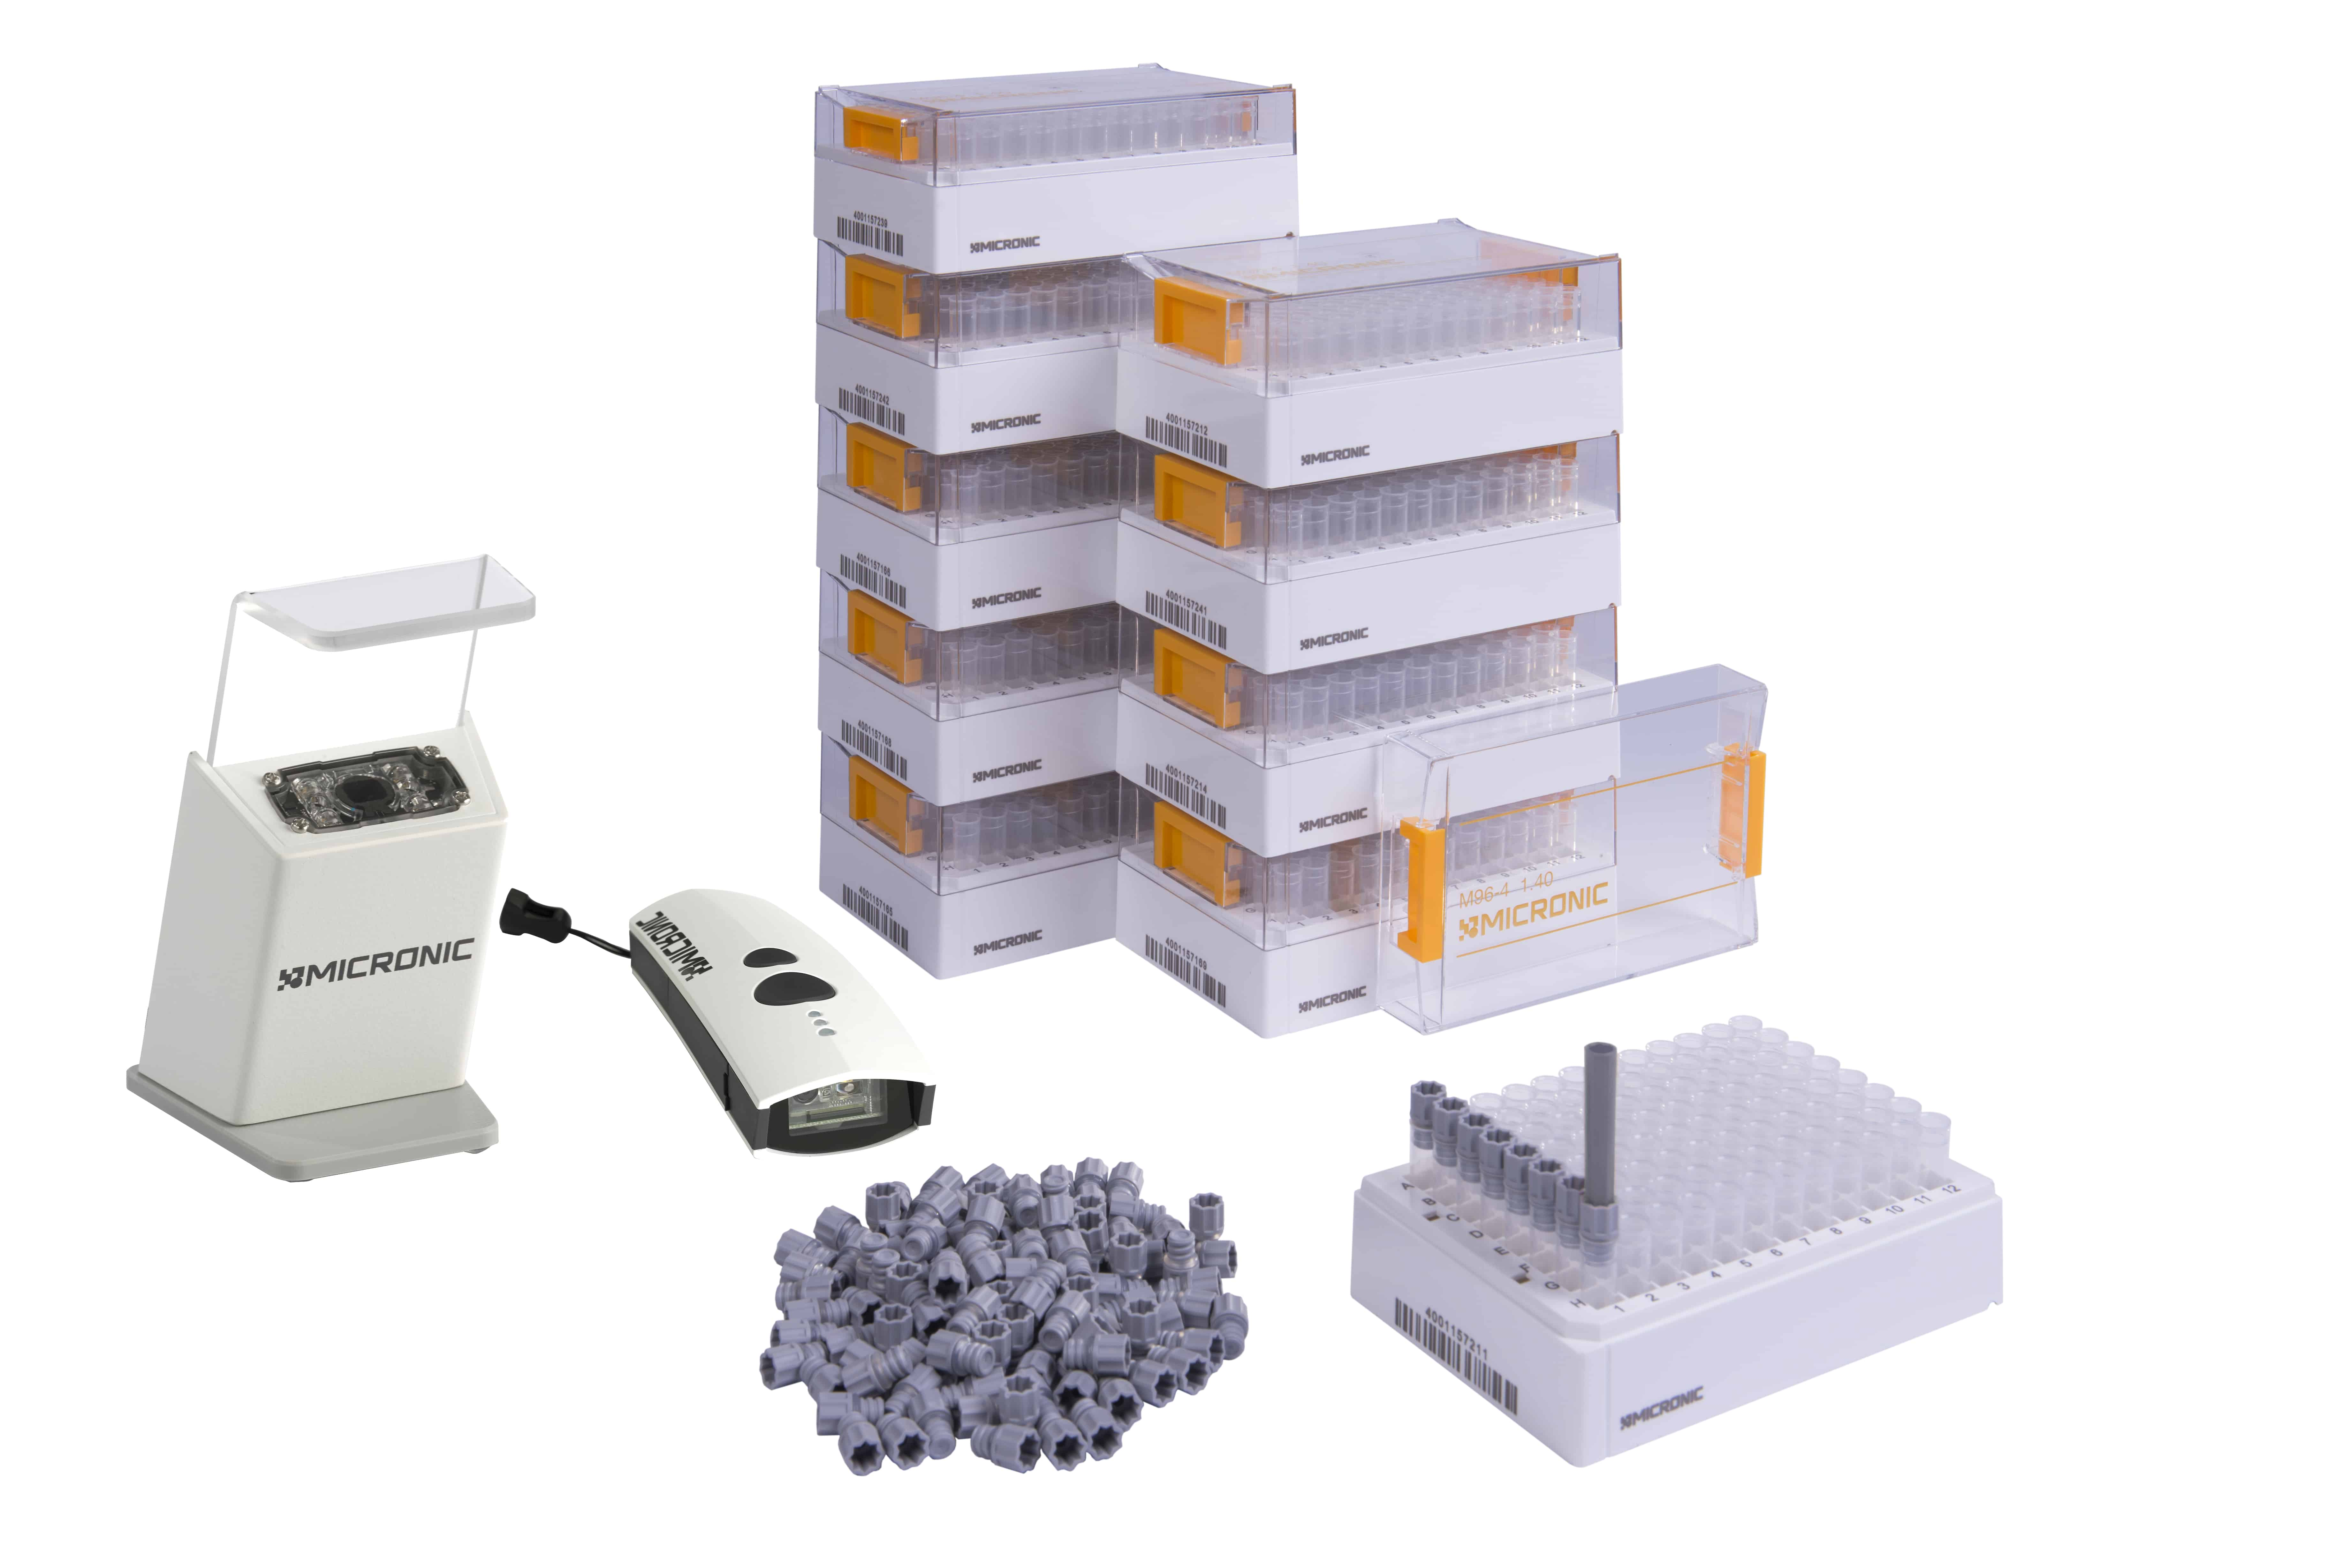 The Micronic Starter Pack Basic with Screw Caps is ideal for research laboratories that want to start using 2D coded tubes